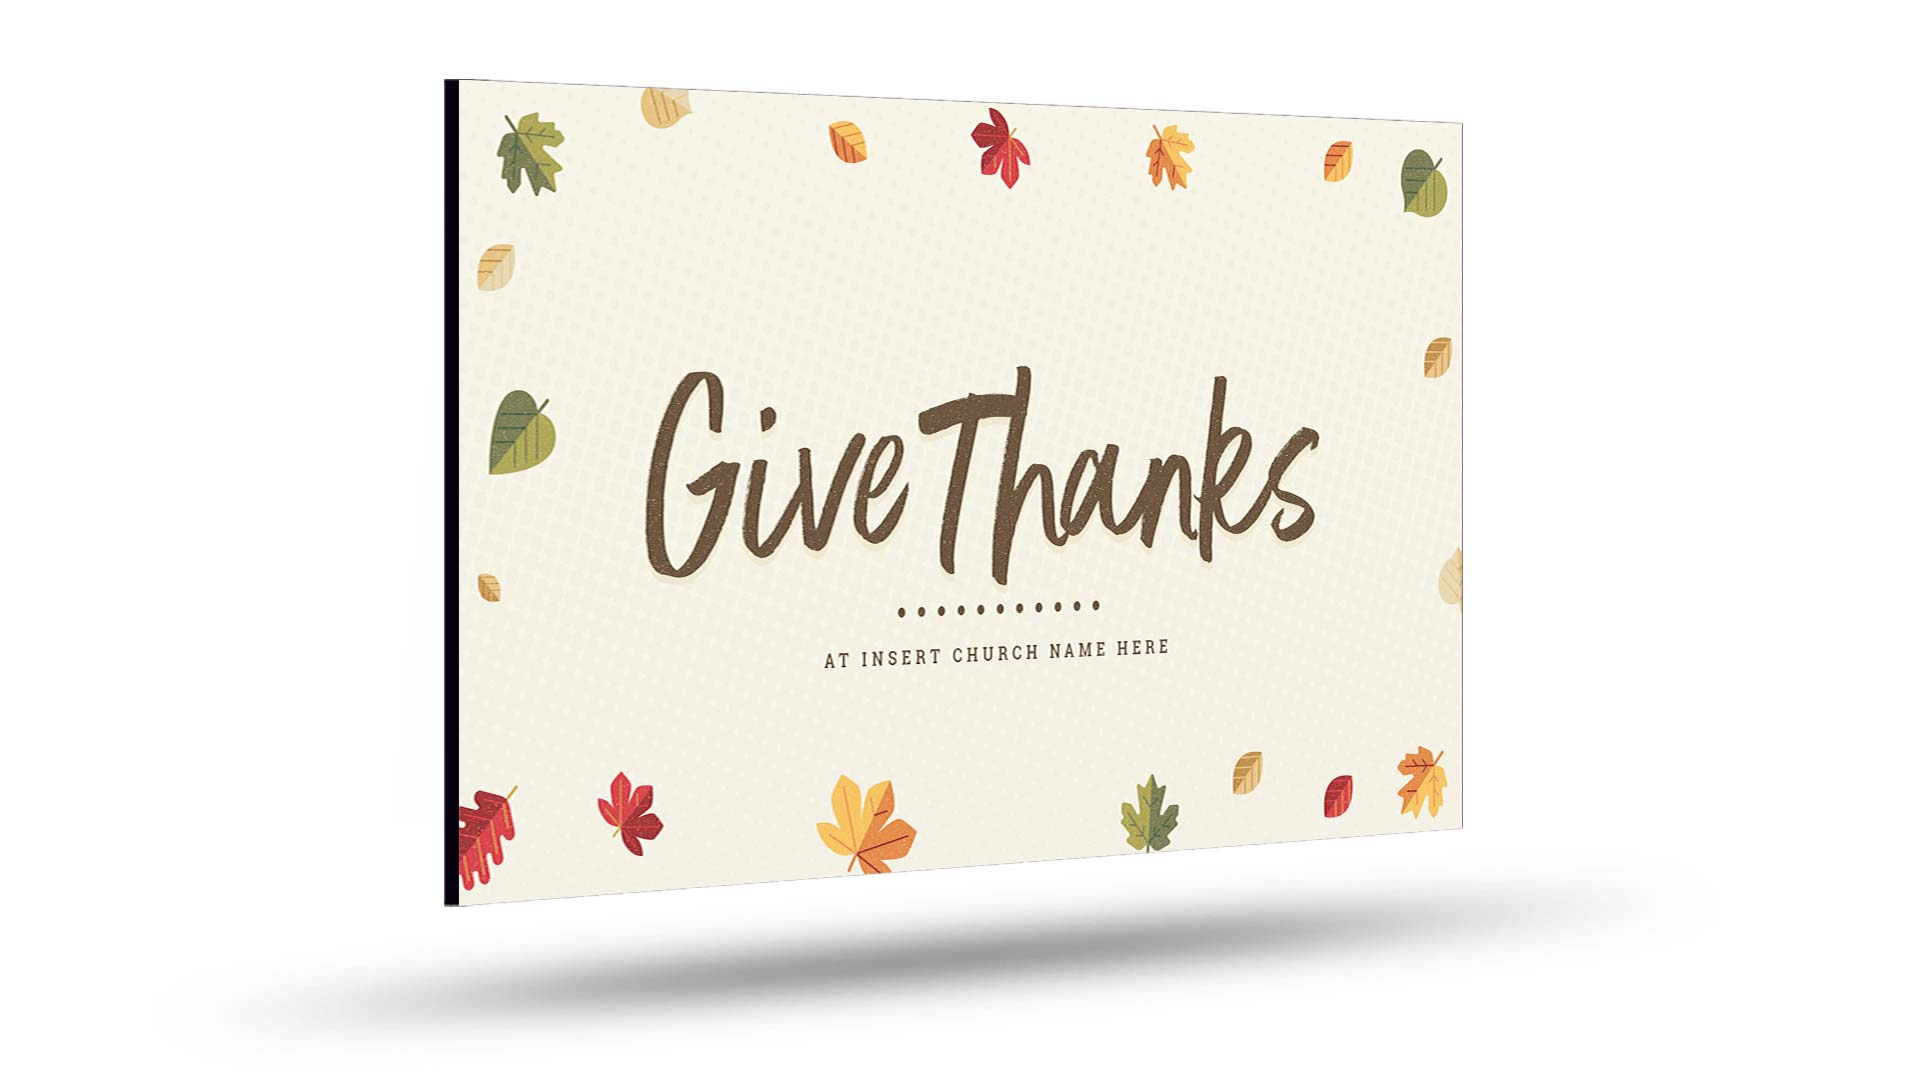 10 Fall And Thanksgiving Slide Templates Ready To Download Right Now